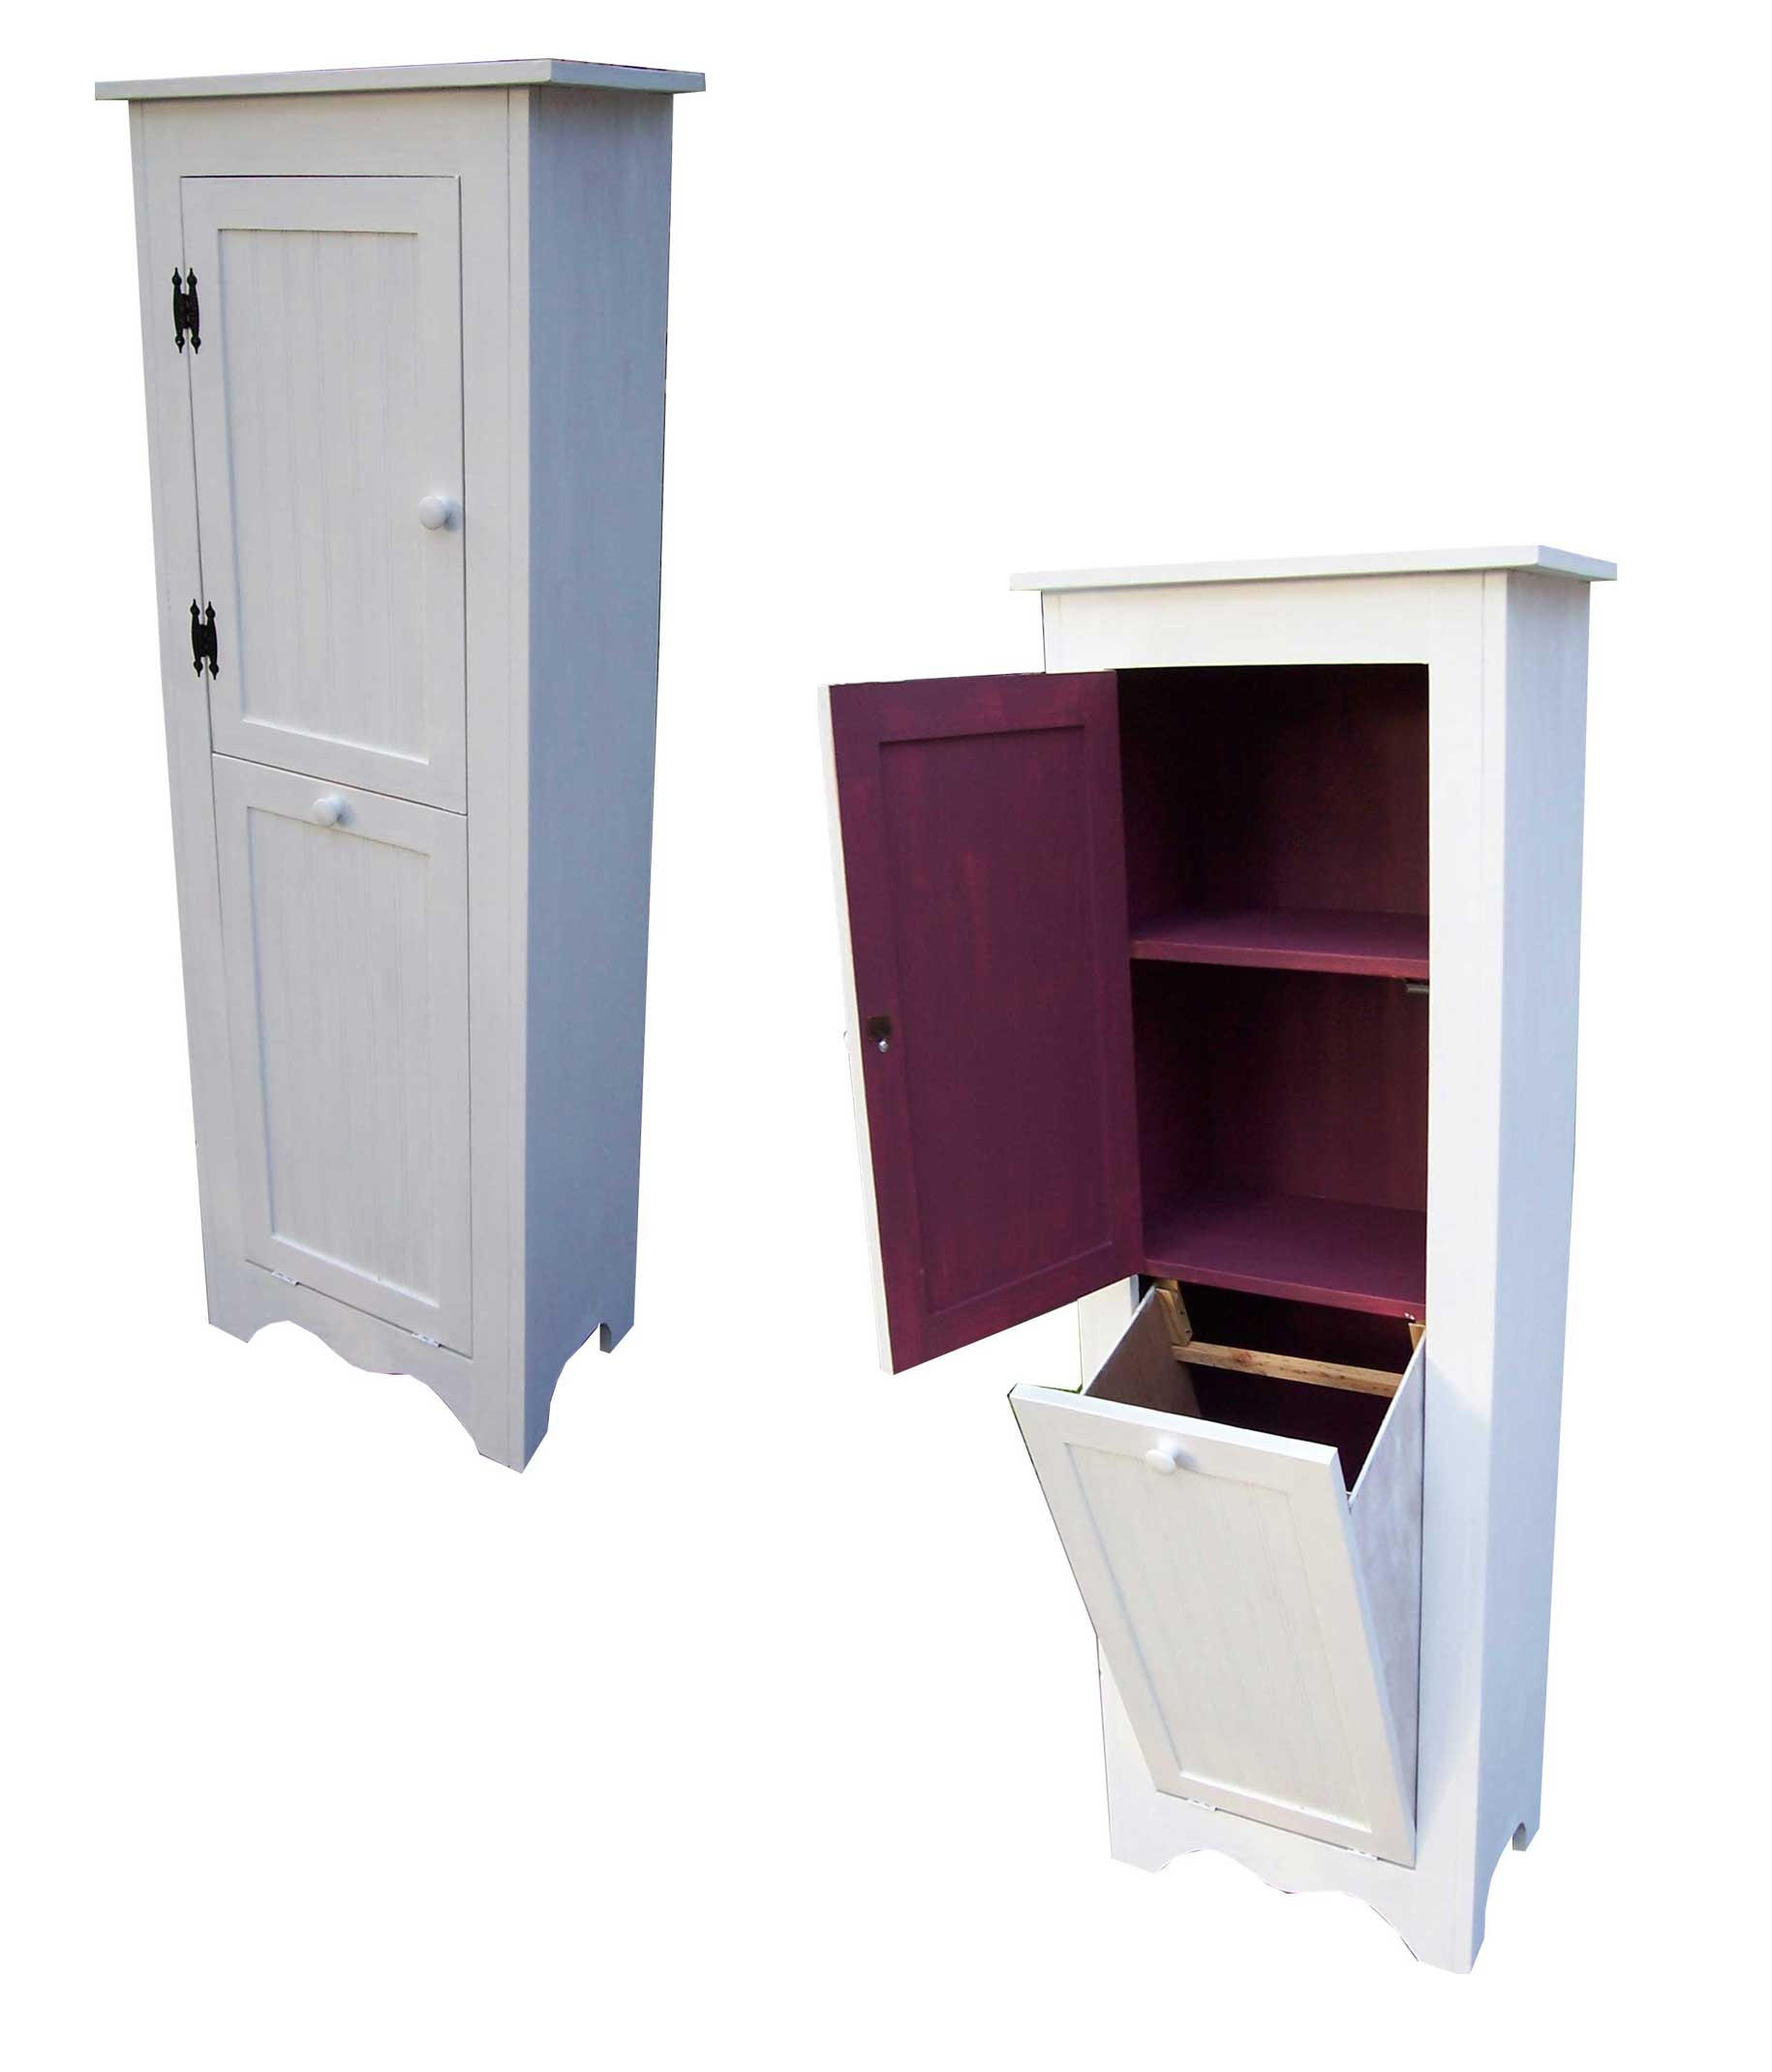 Permalink to Bathroom Cabinet With Laundry Bin